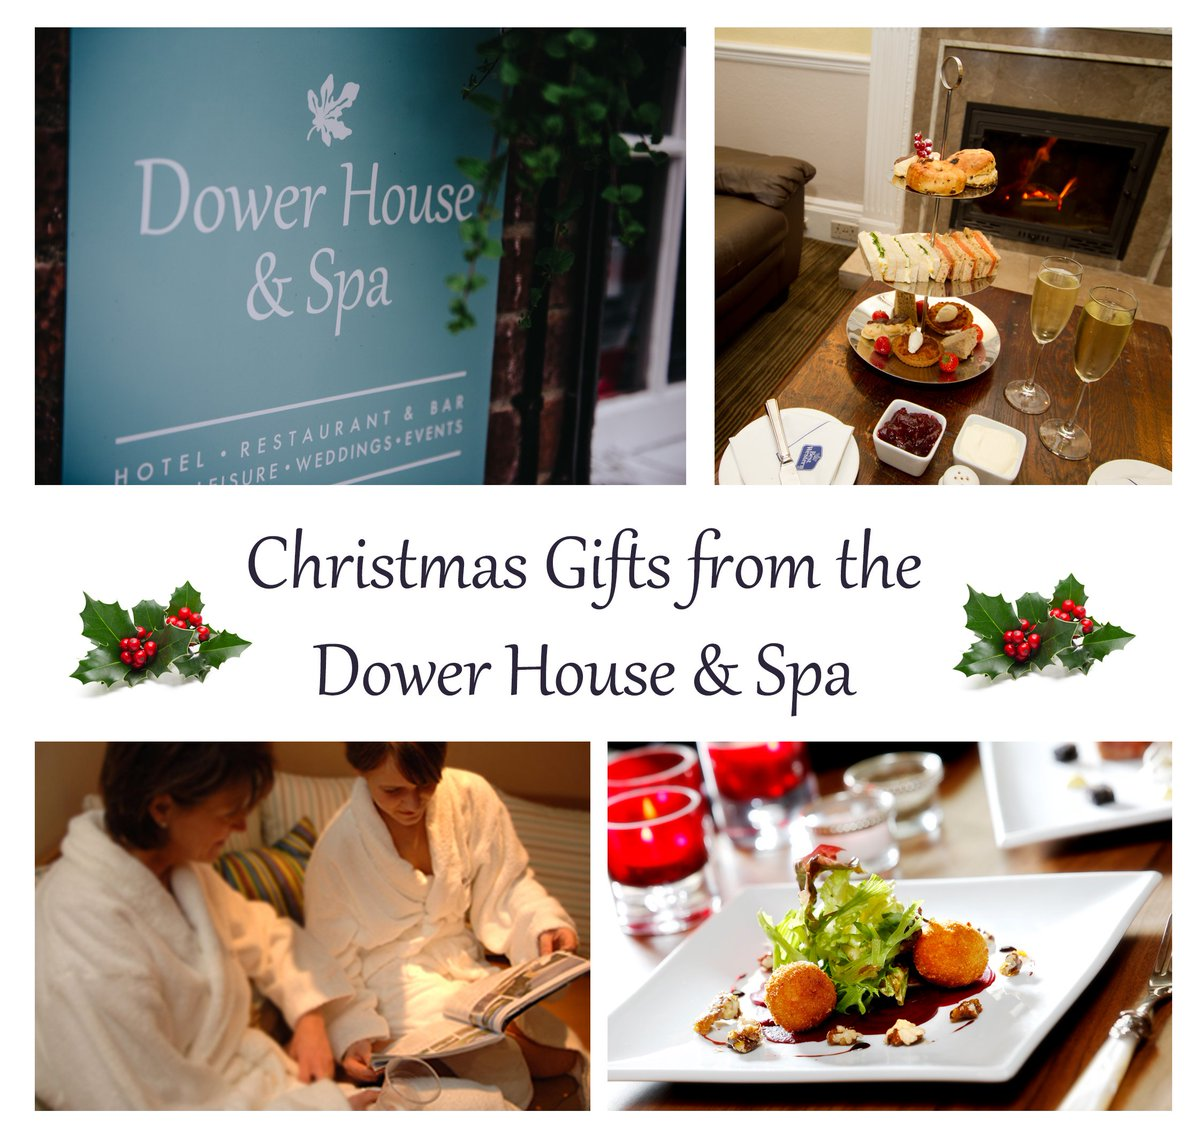 Christmas present time! Why not treat someone to a Spa Experience, overnight stay or Dinner at the Dower House #TakenCareOf #GiftVouchers https://t.co/6L1CKOVyrA https://t.co/88FhR6z0D7